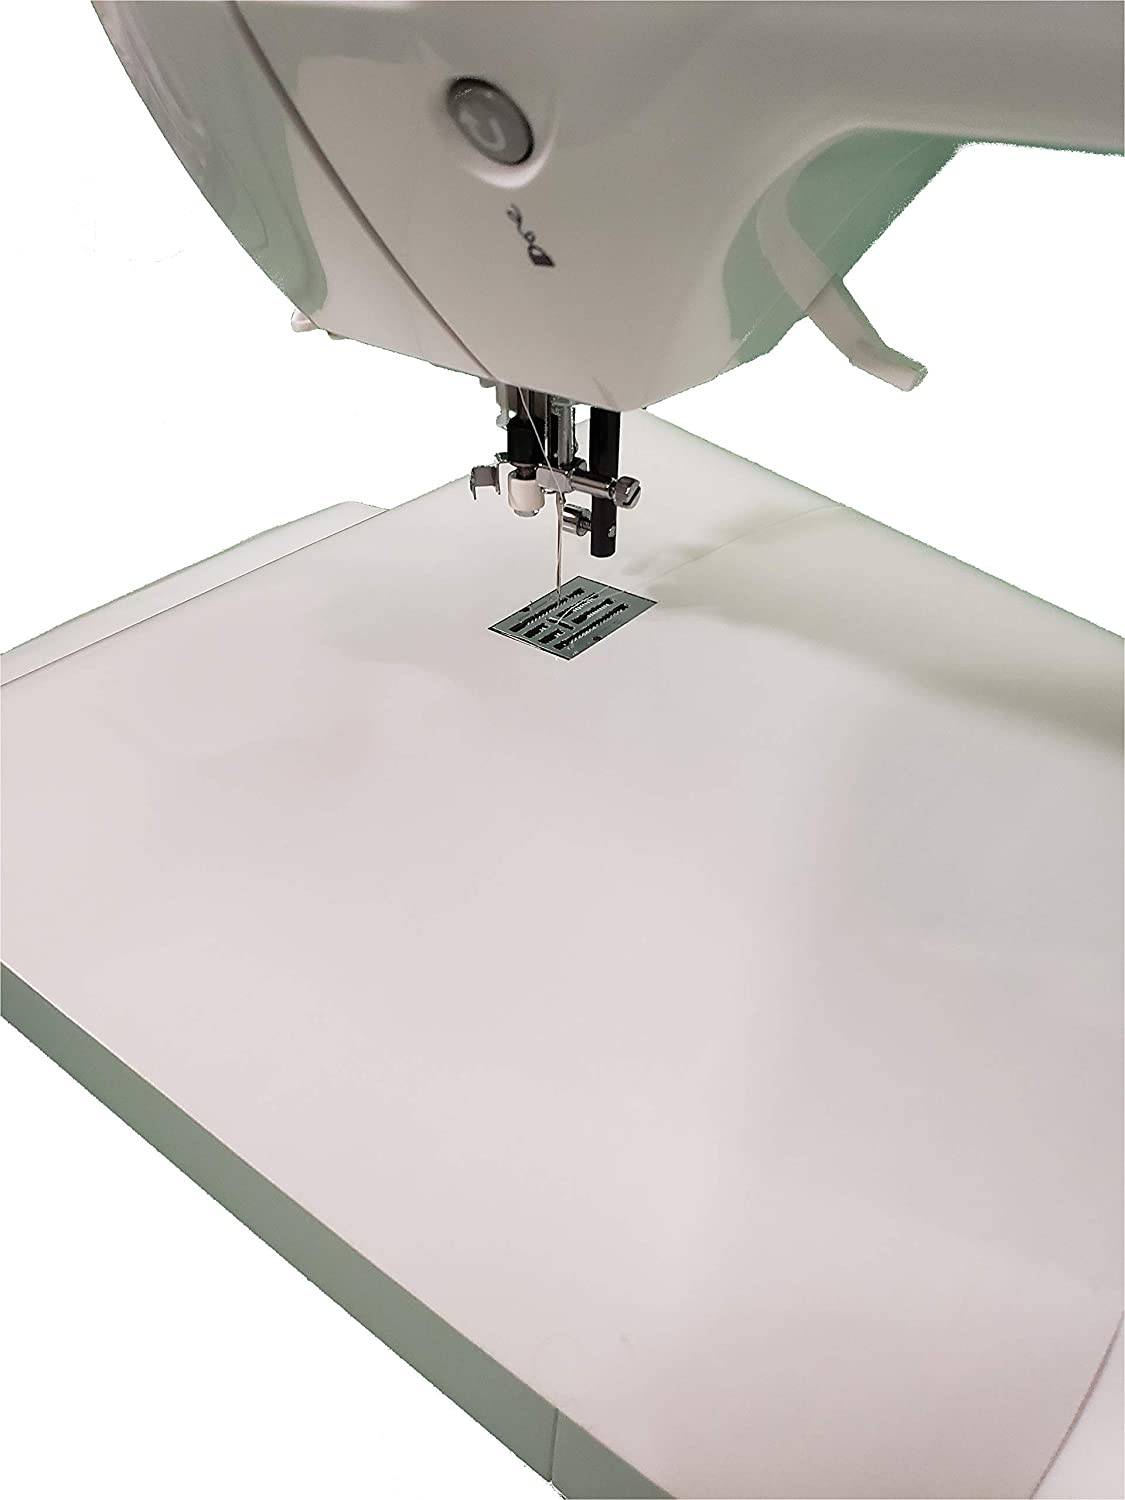 12 by 18-Inch Sew Slip SEWSLIP Multi-Purpose Quilting Sheet with Round Hole